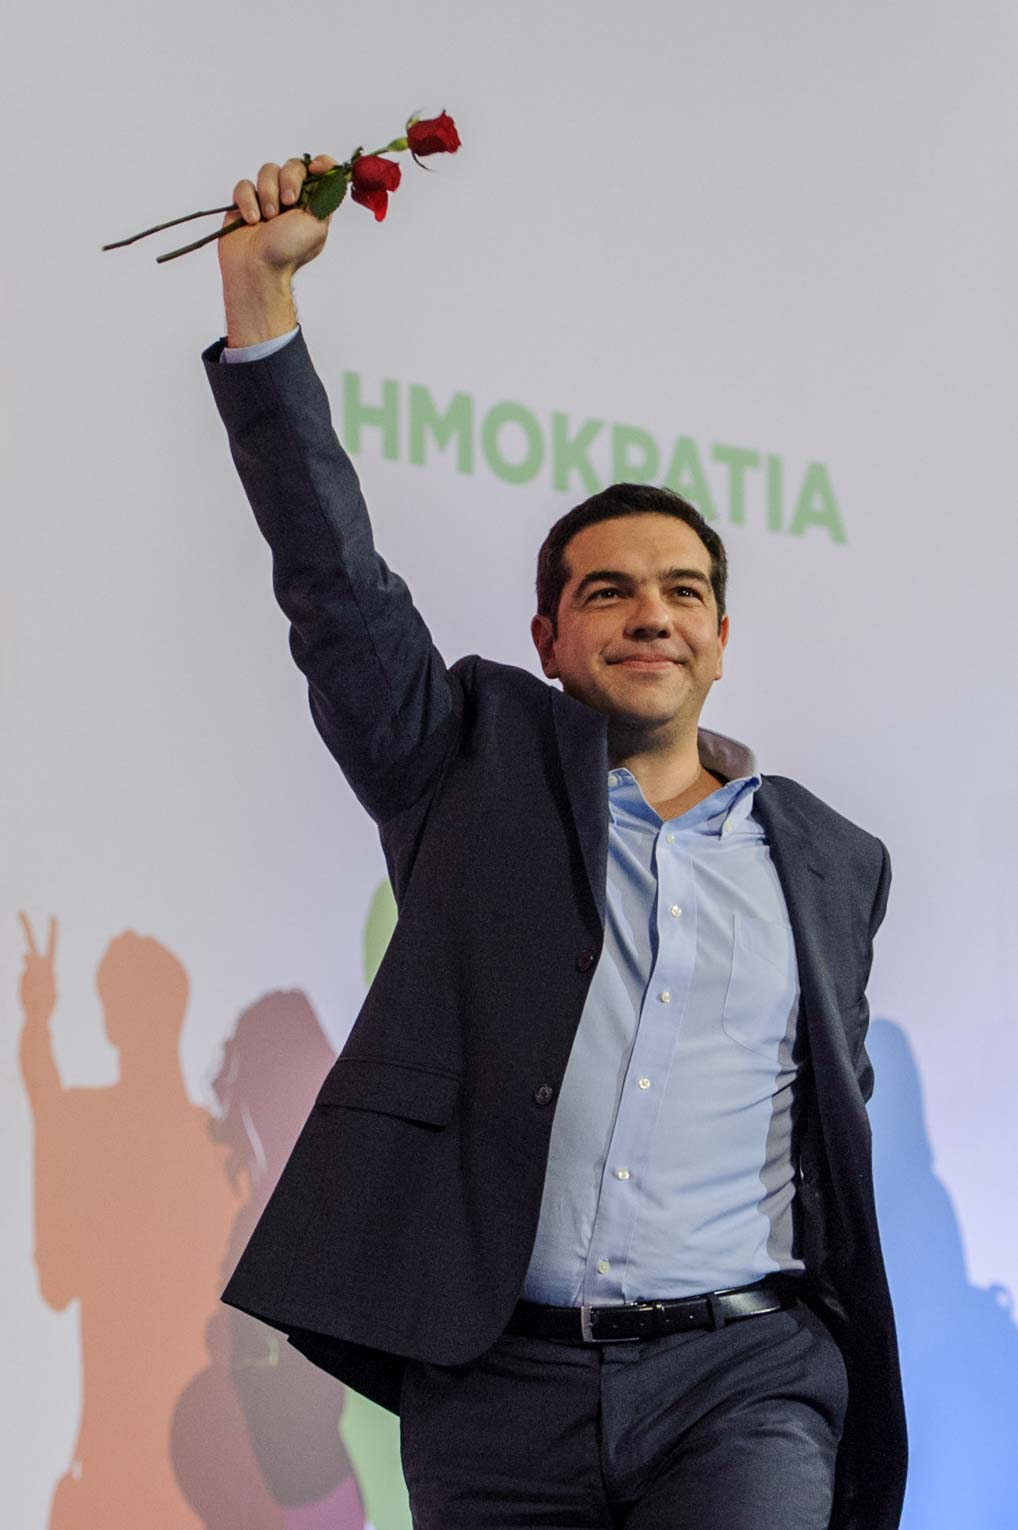 Alexis Tsipras, top candidate of the Greek left party SYRIZA (Thessaloniki, 2015). Photo © Aris Fotografie